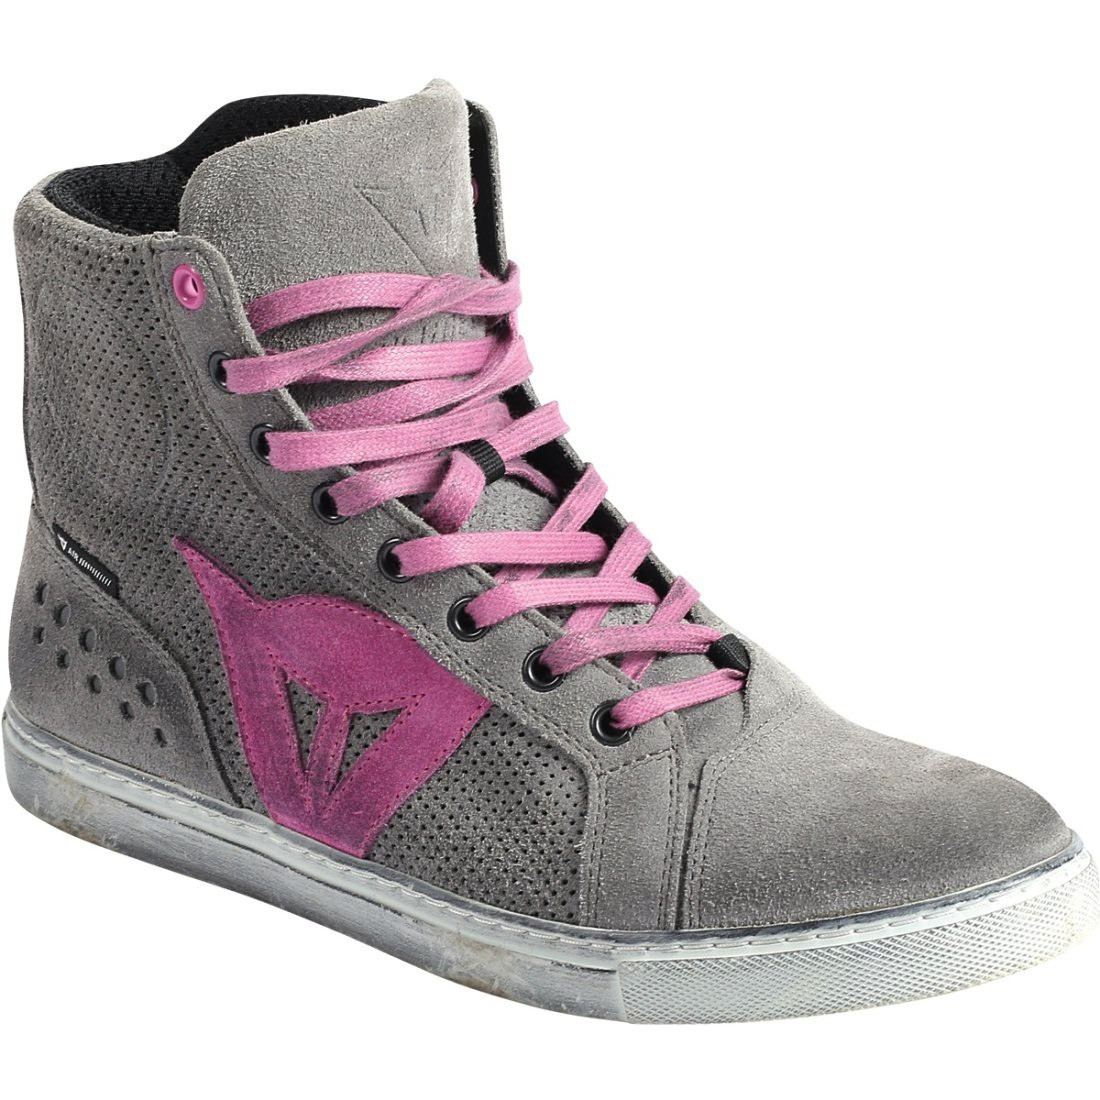 DAINESE Street Biker Air Lady Gray Orchid Boots